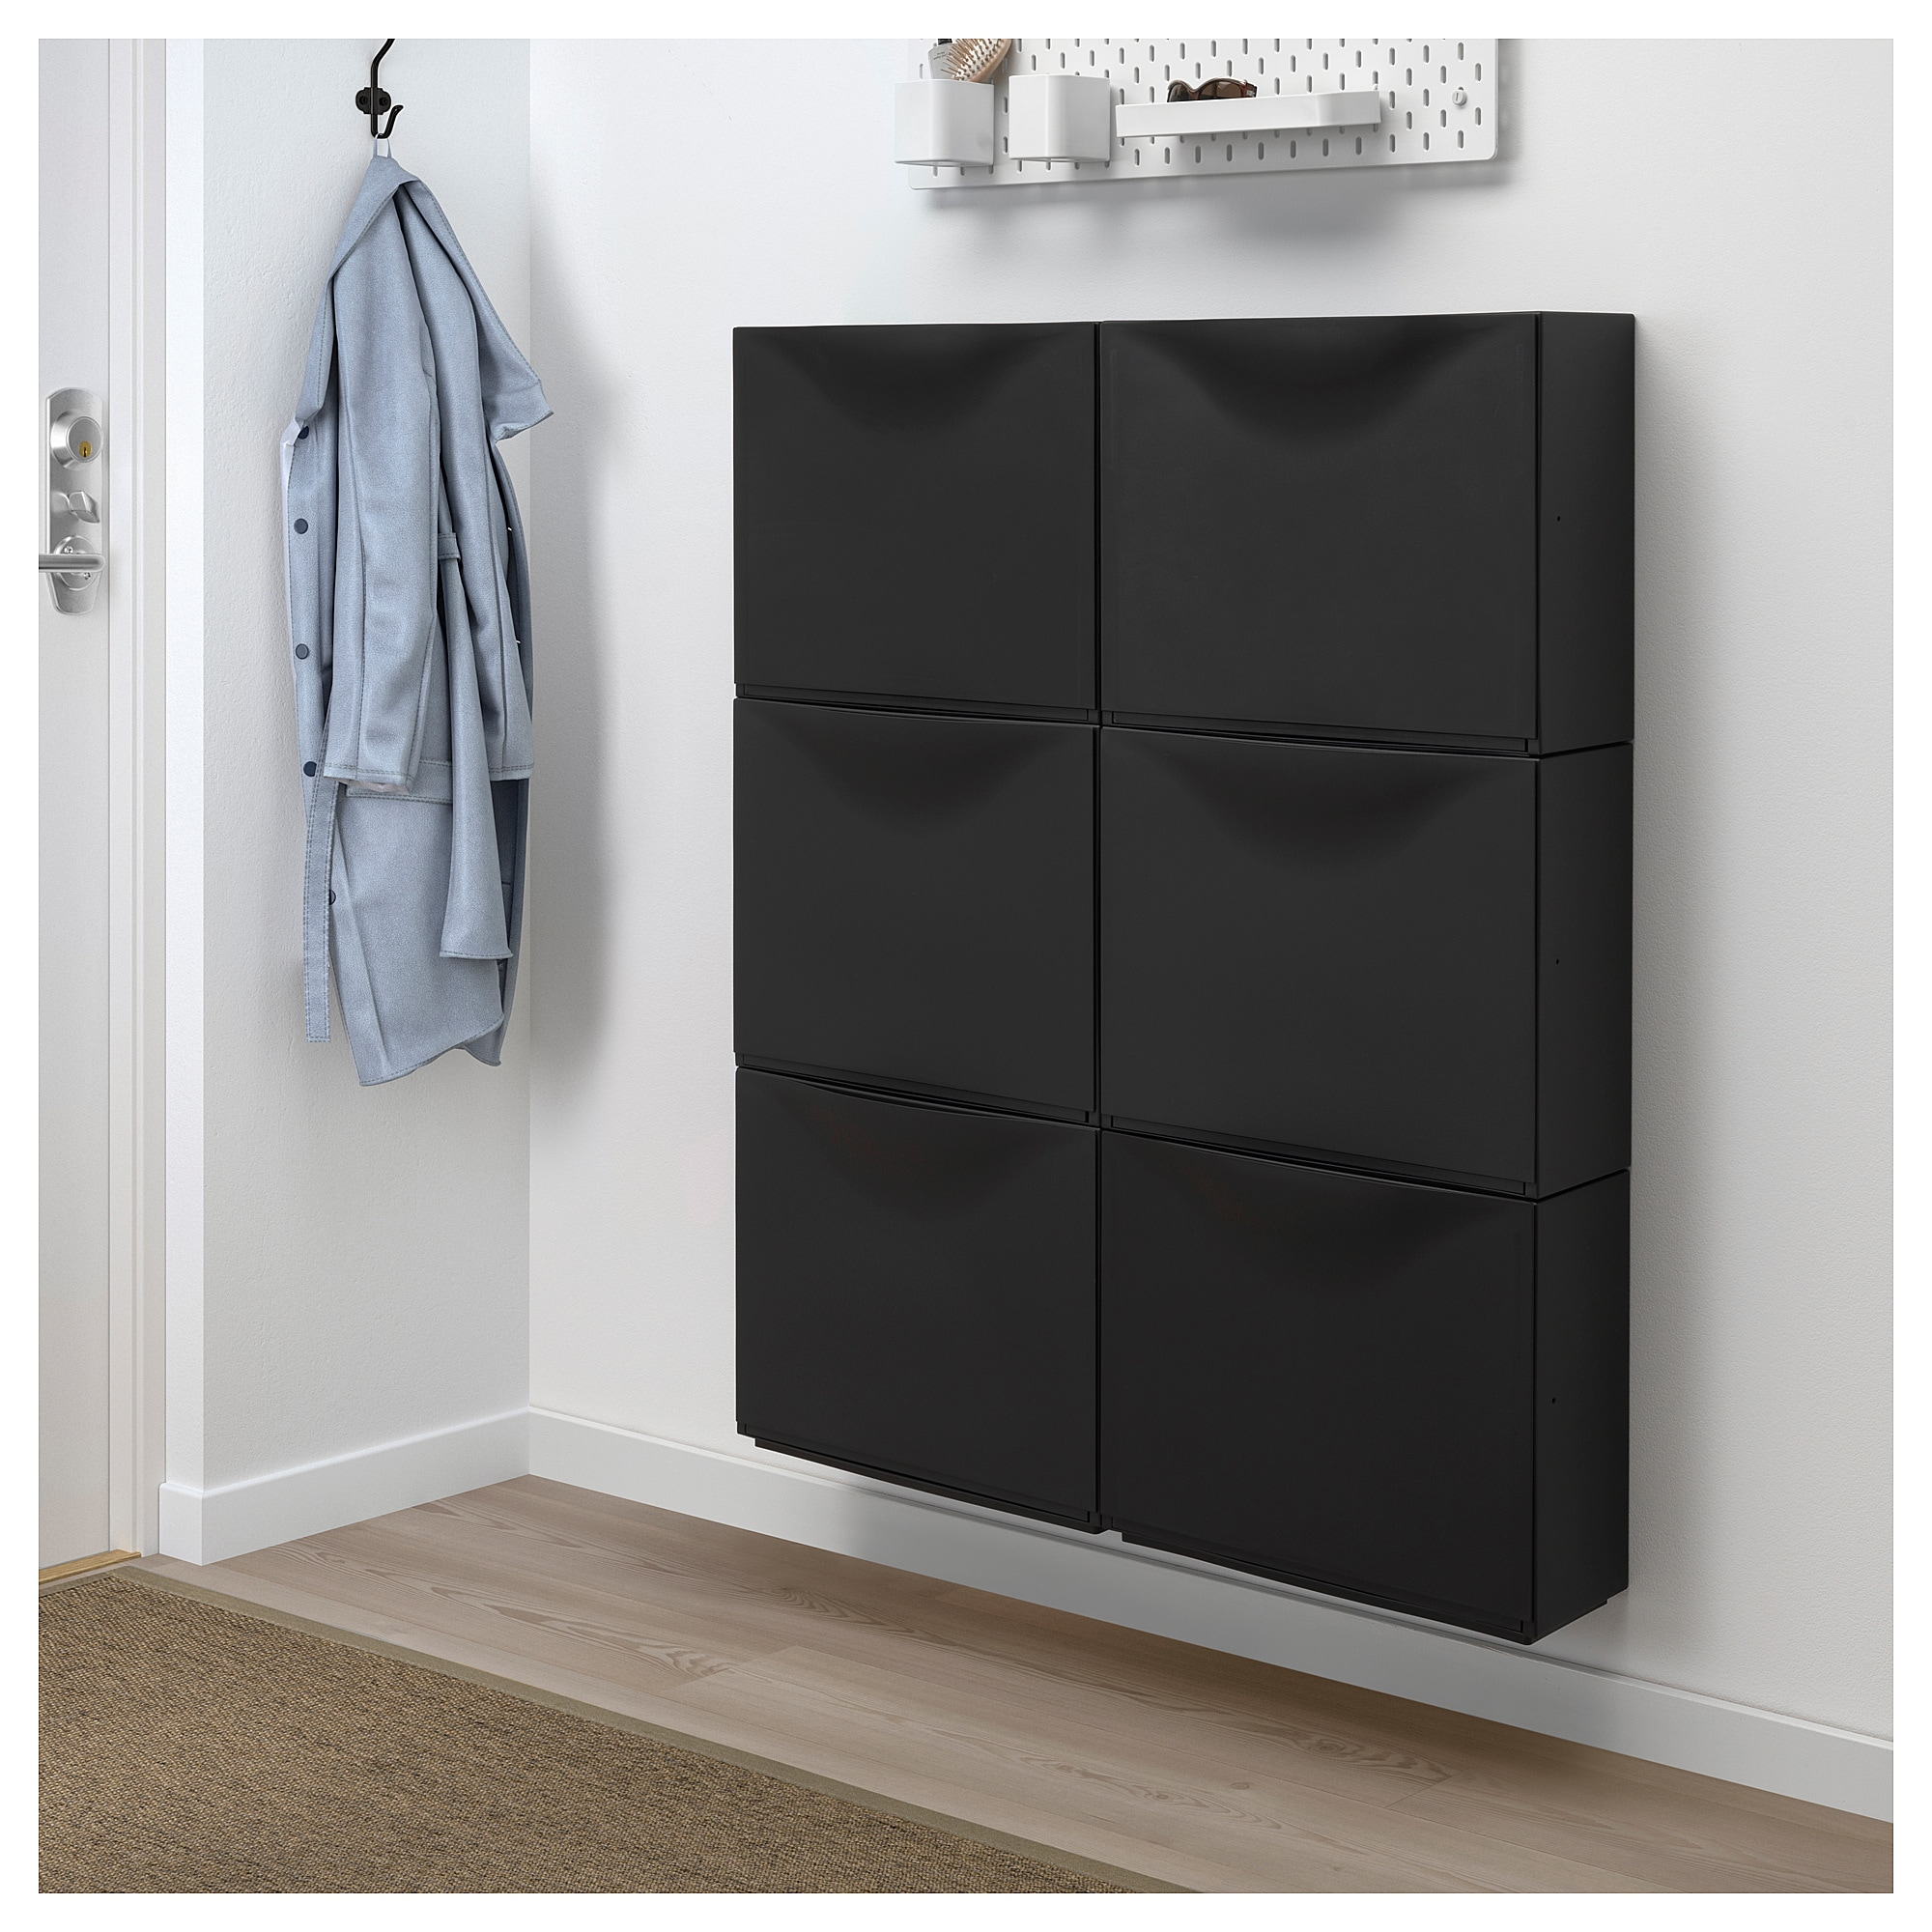 Trones Armoire A Chaussures Rangement Ikea